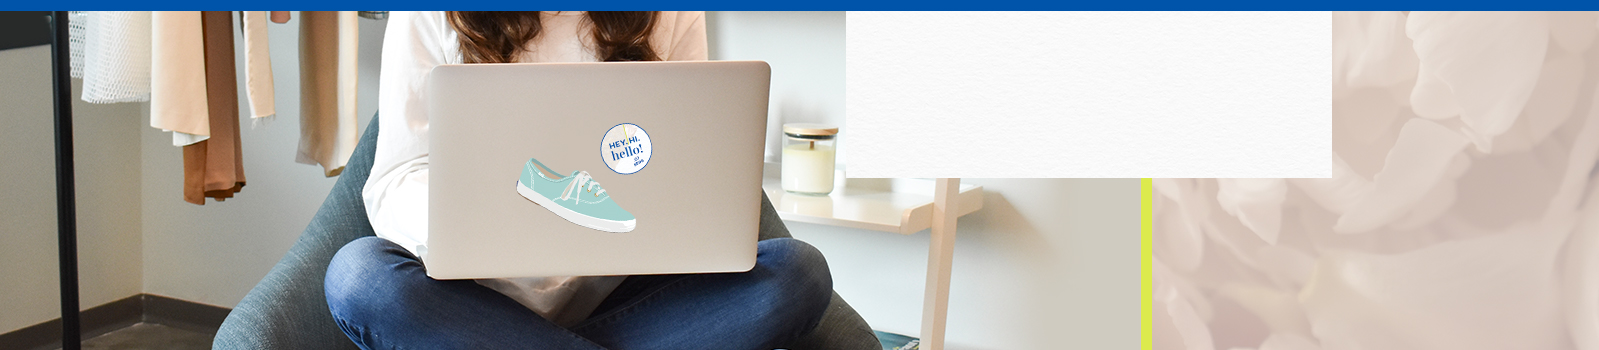 Female sitting in a chair, cross-legged, ordering stickers from Keds on her laptop.